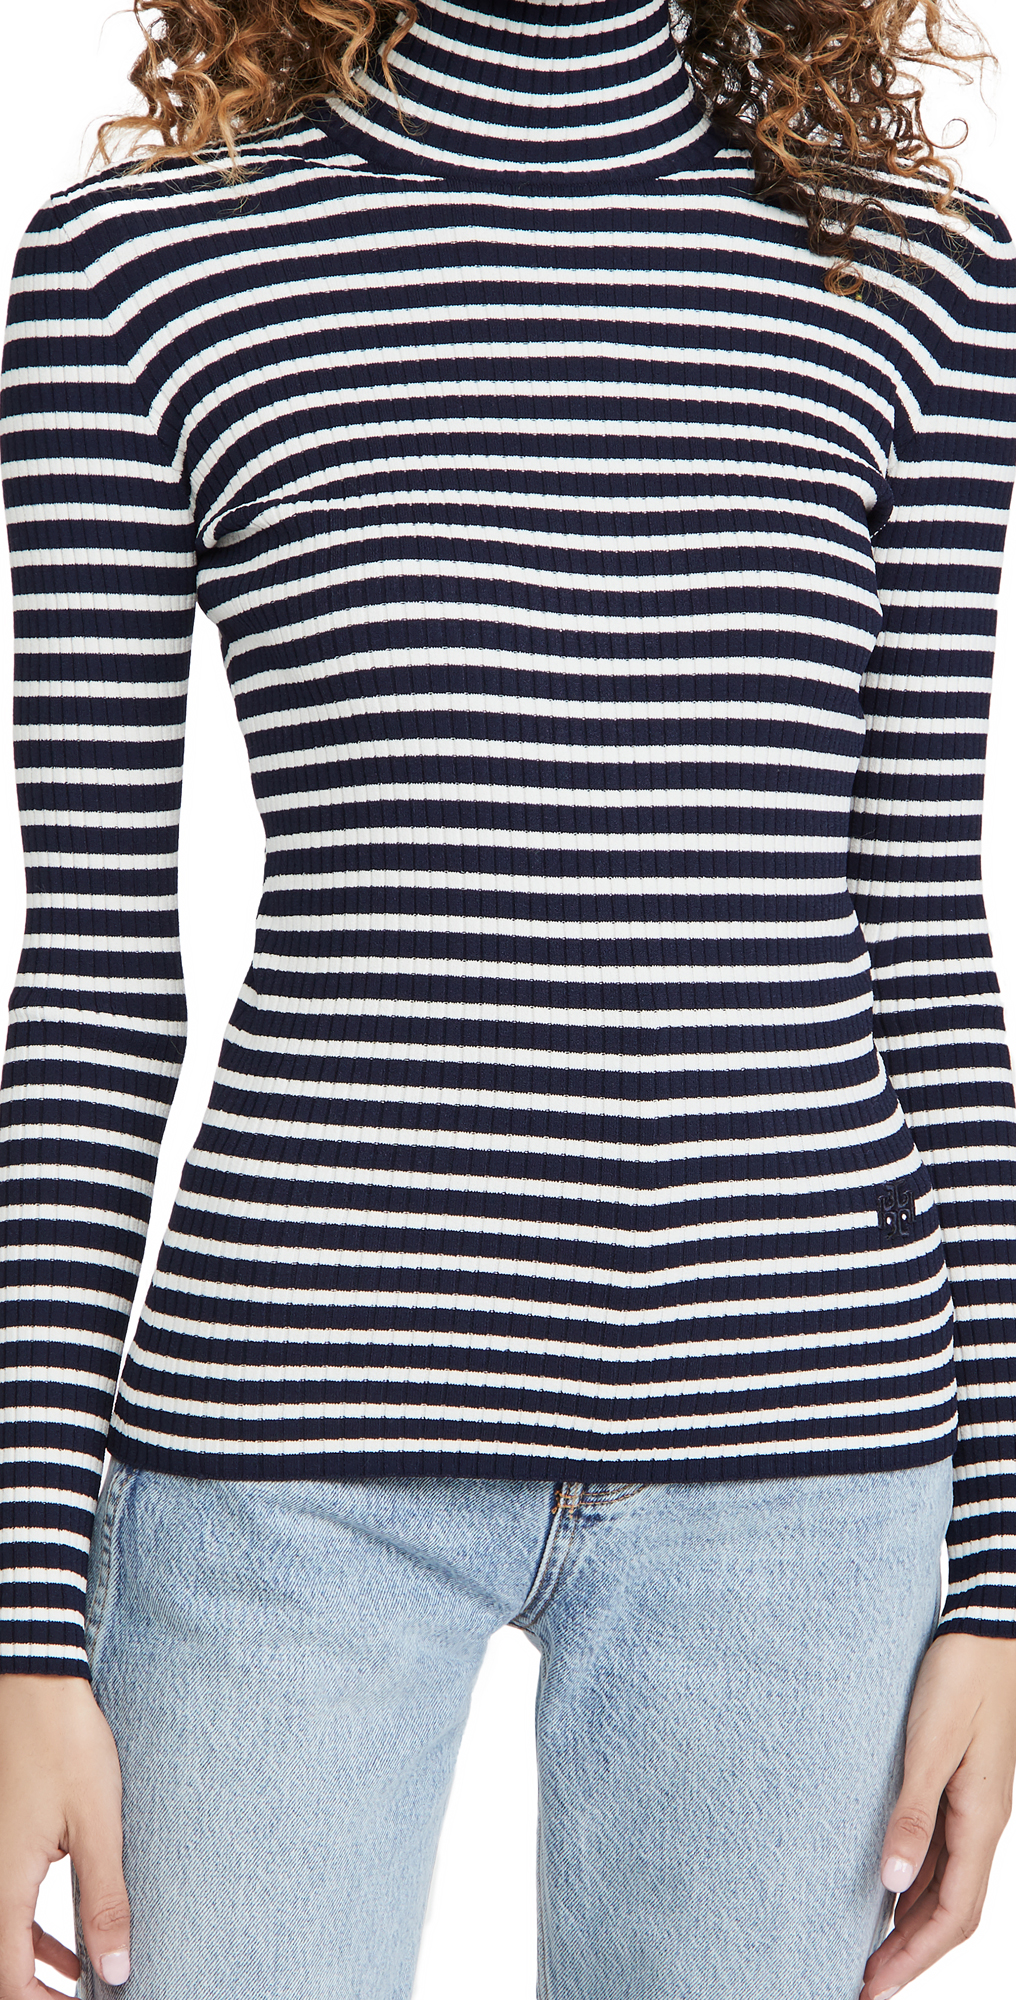 Tory Burch Rib Tech Knit Turtleneck